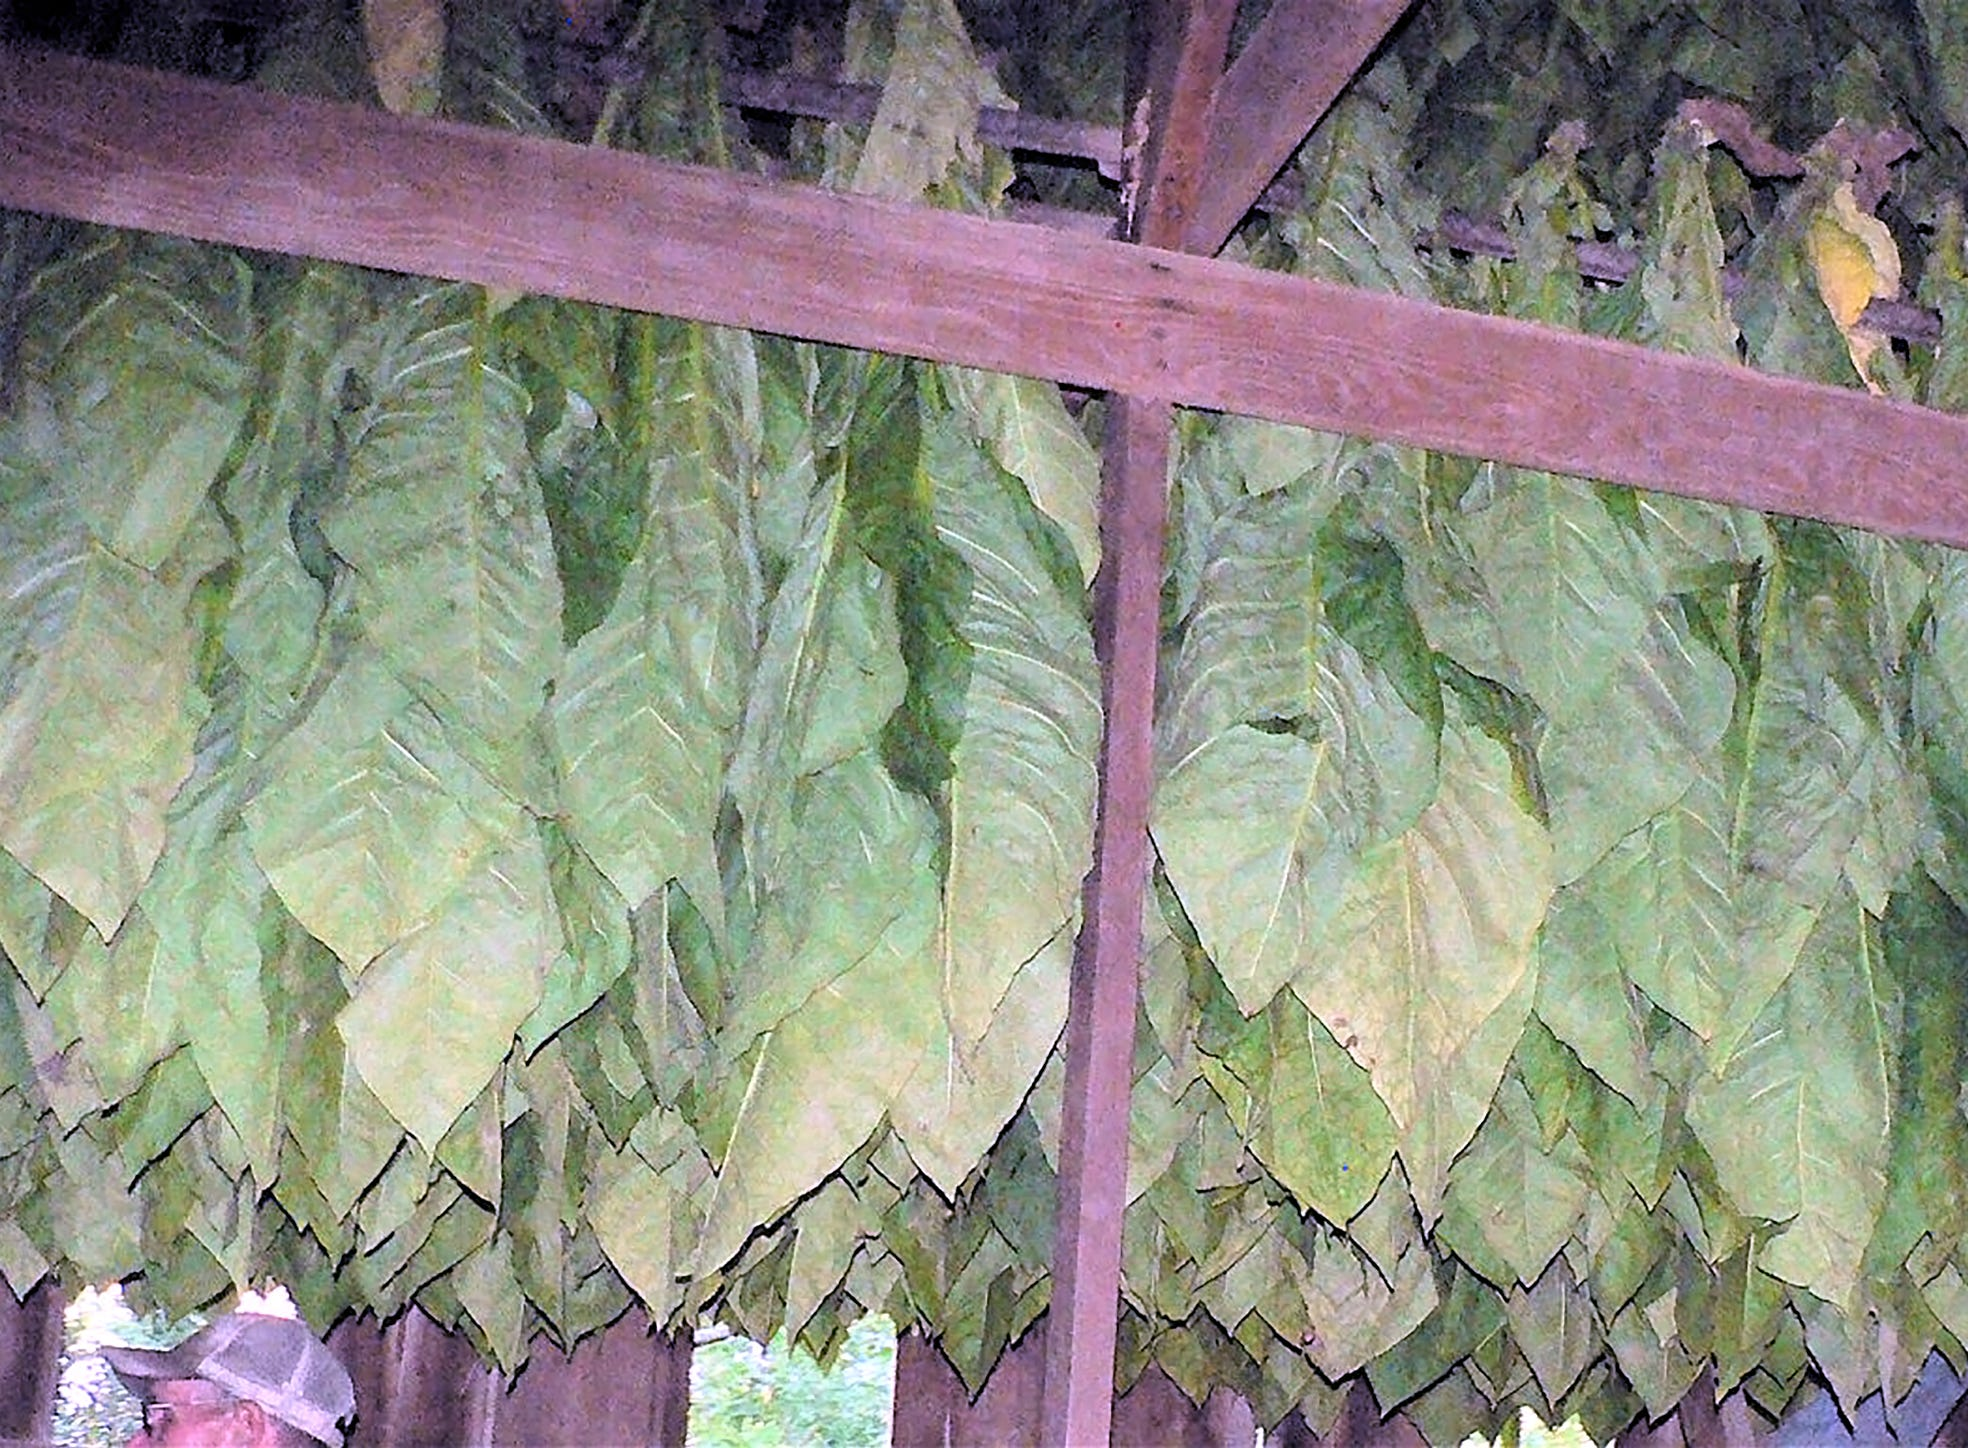 The tobacco is cured in the shed from August to December.